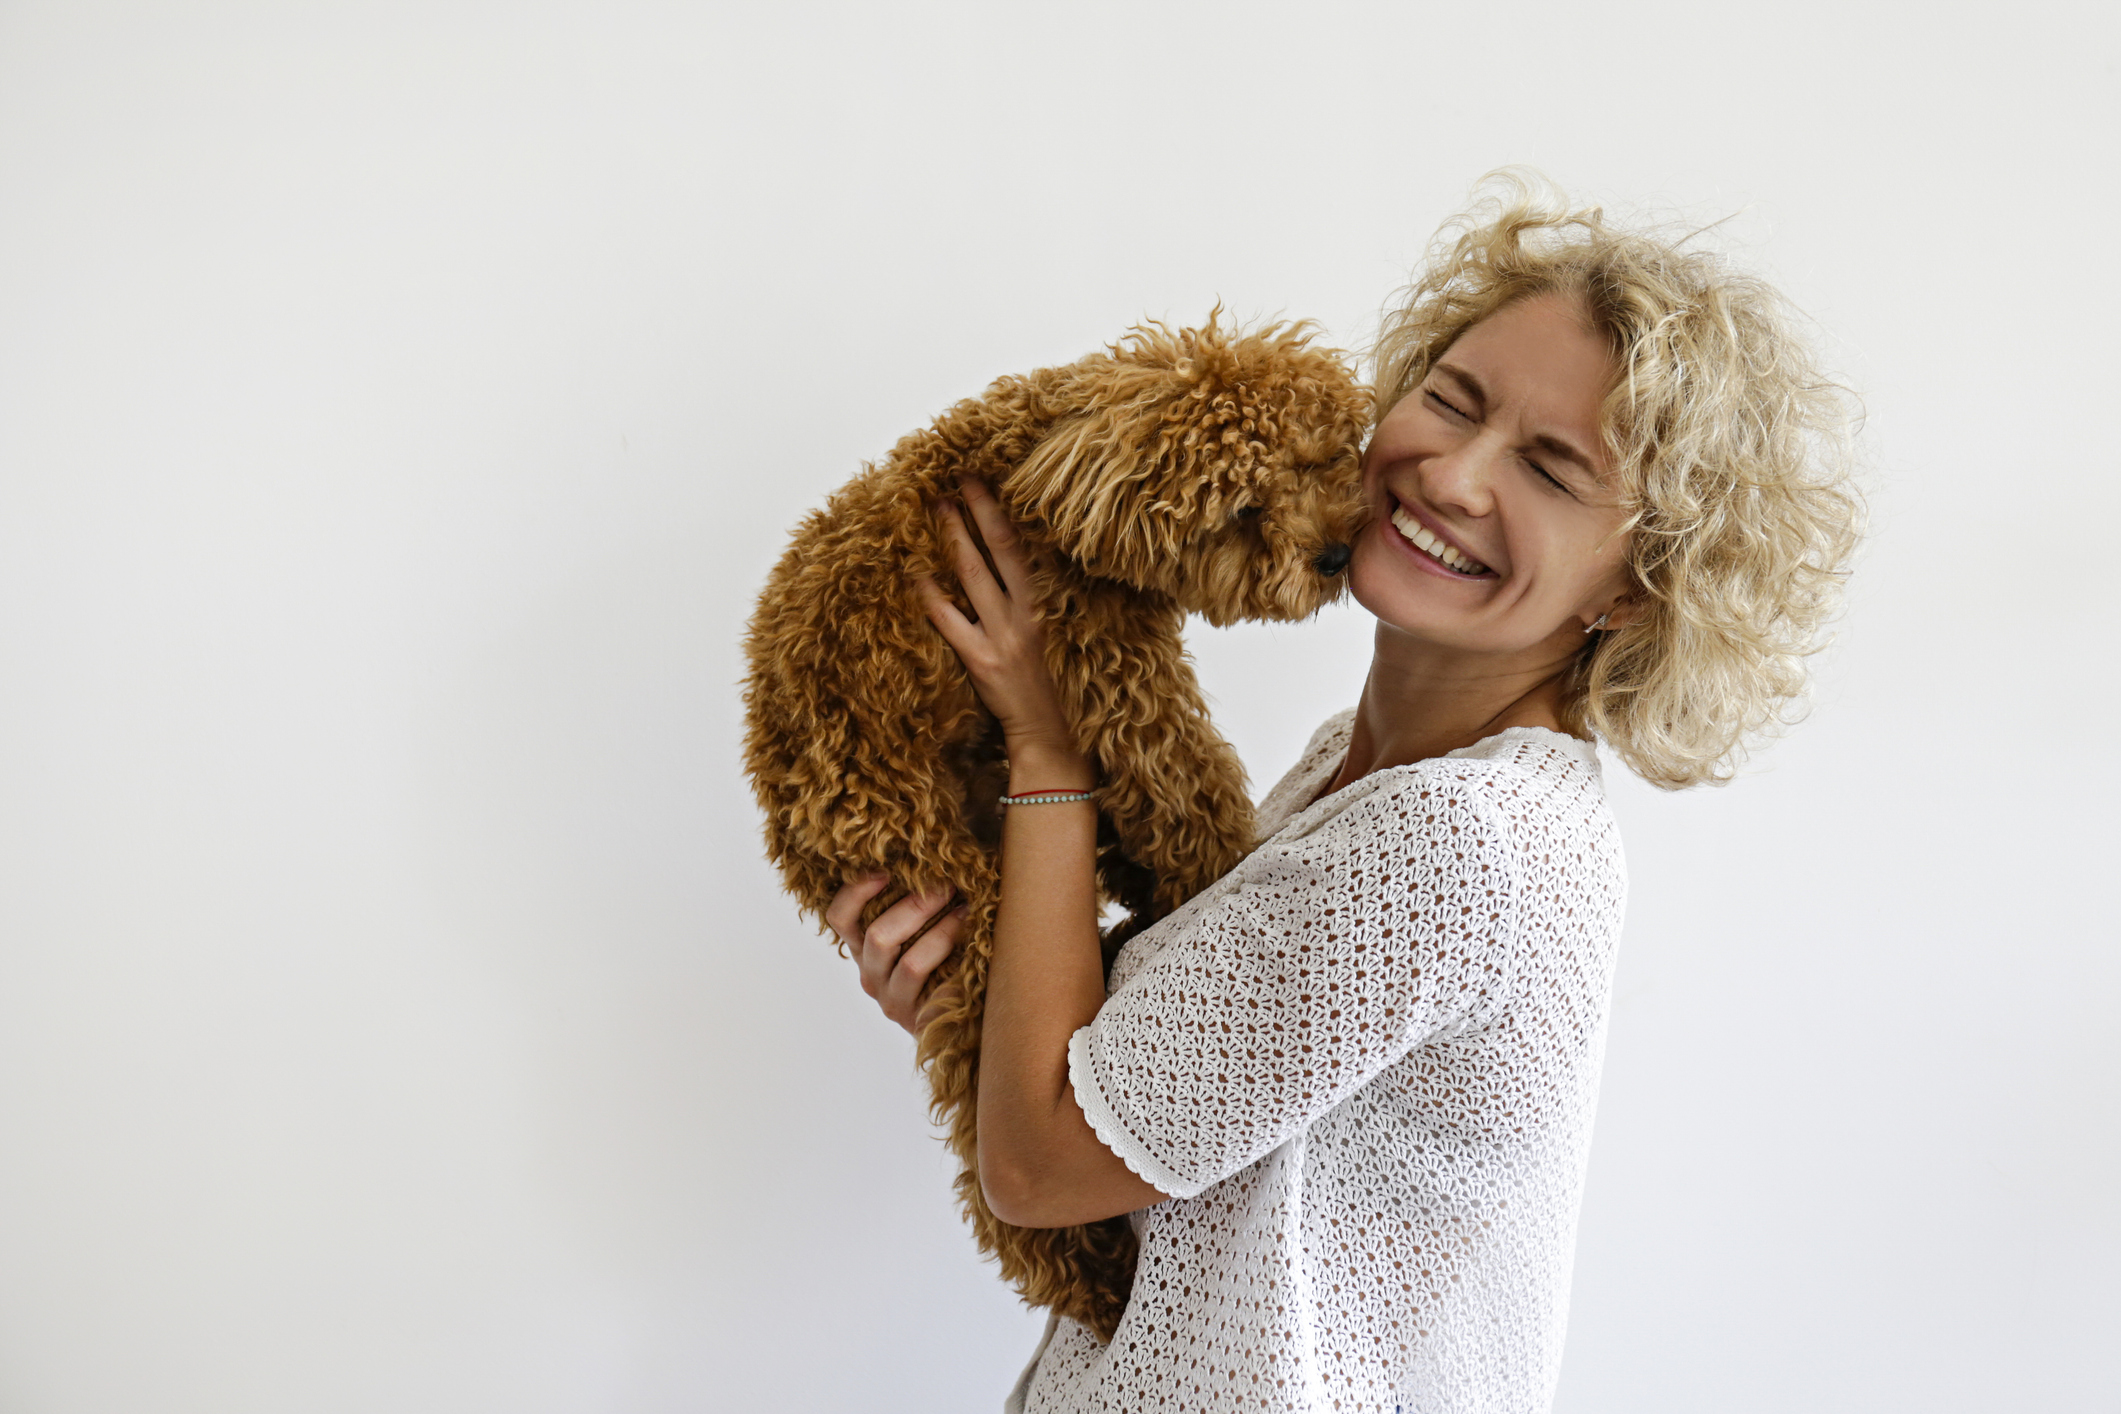 Want to feel better fast? Try a canine cuddle